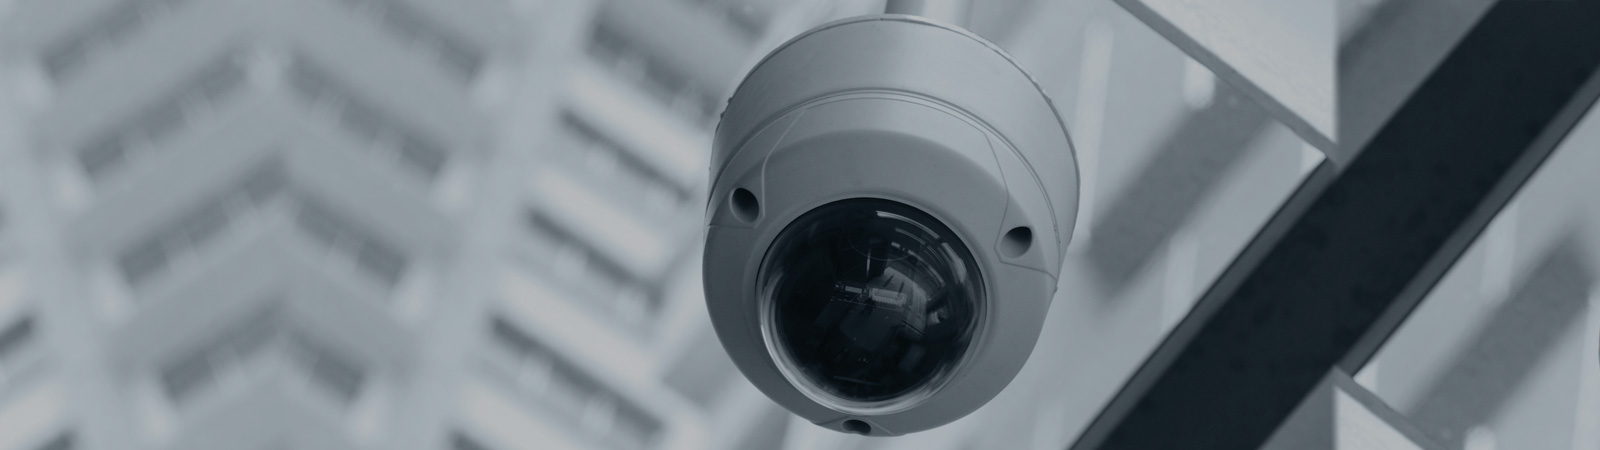 HD Video Surveillance Systems Calgary